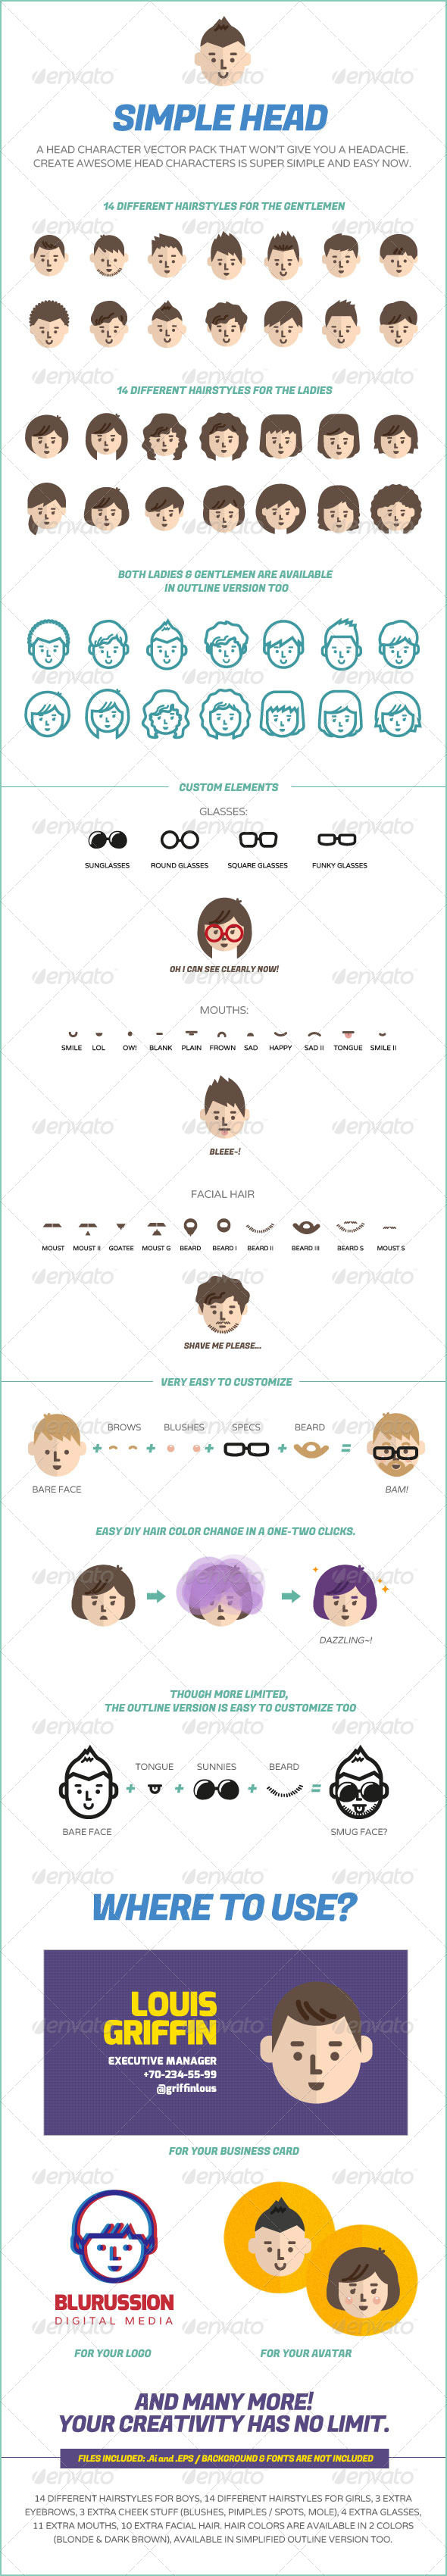 GraphicRiver Simple Head Character Design Vector Pack 5353983